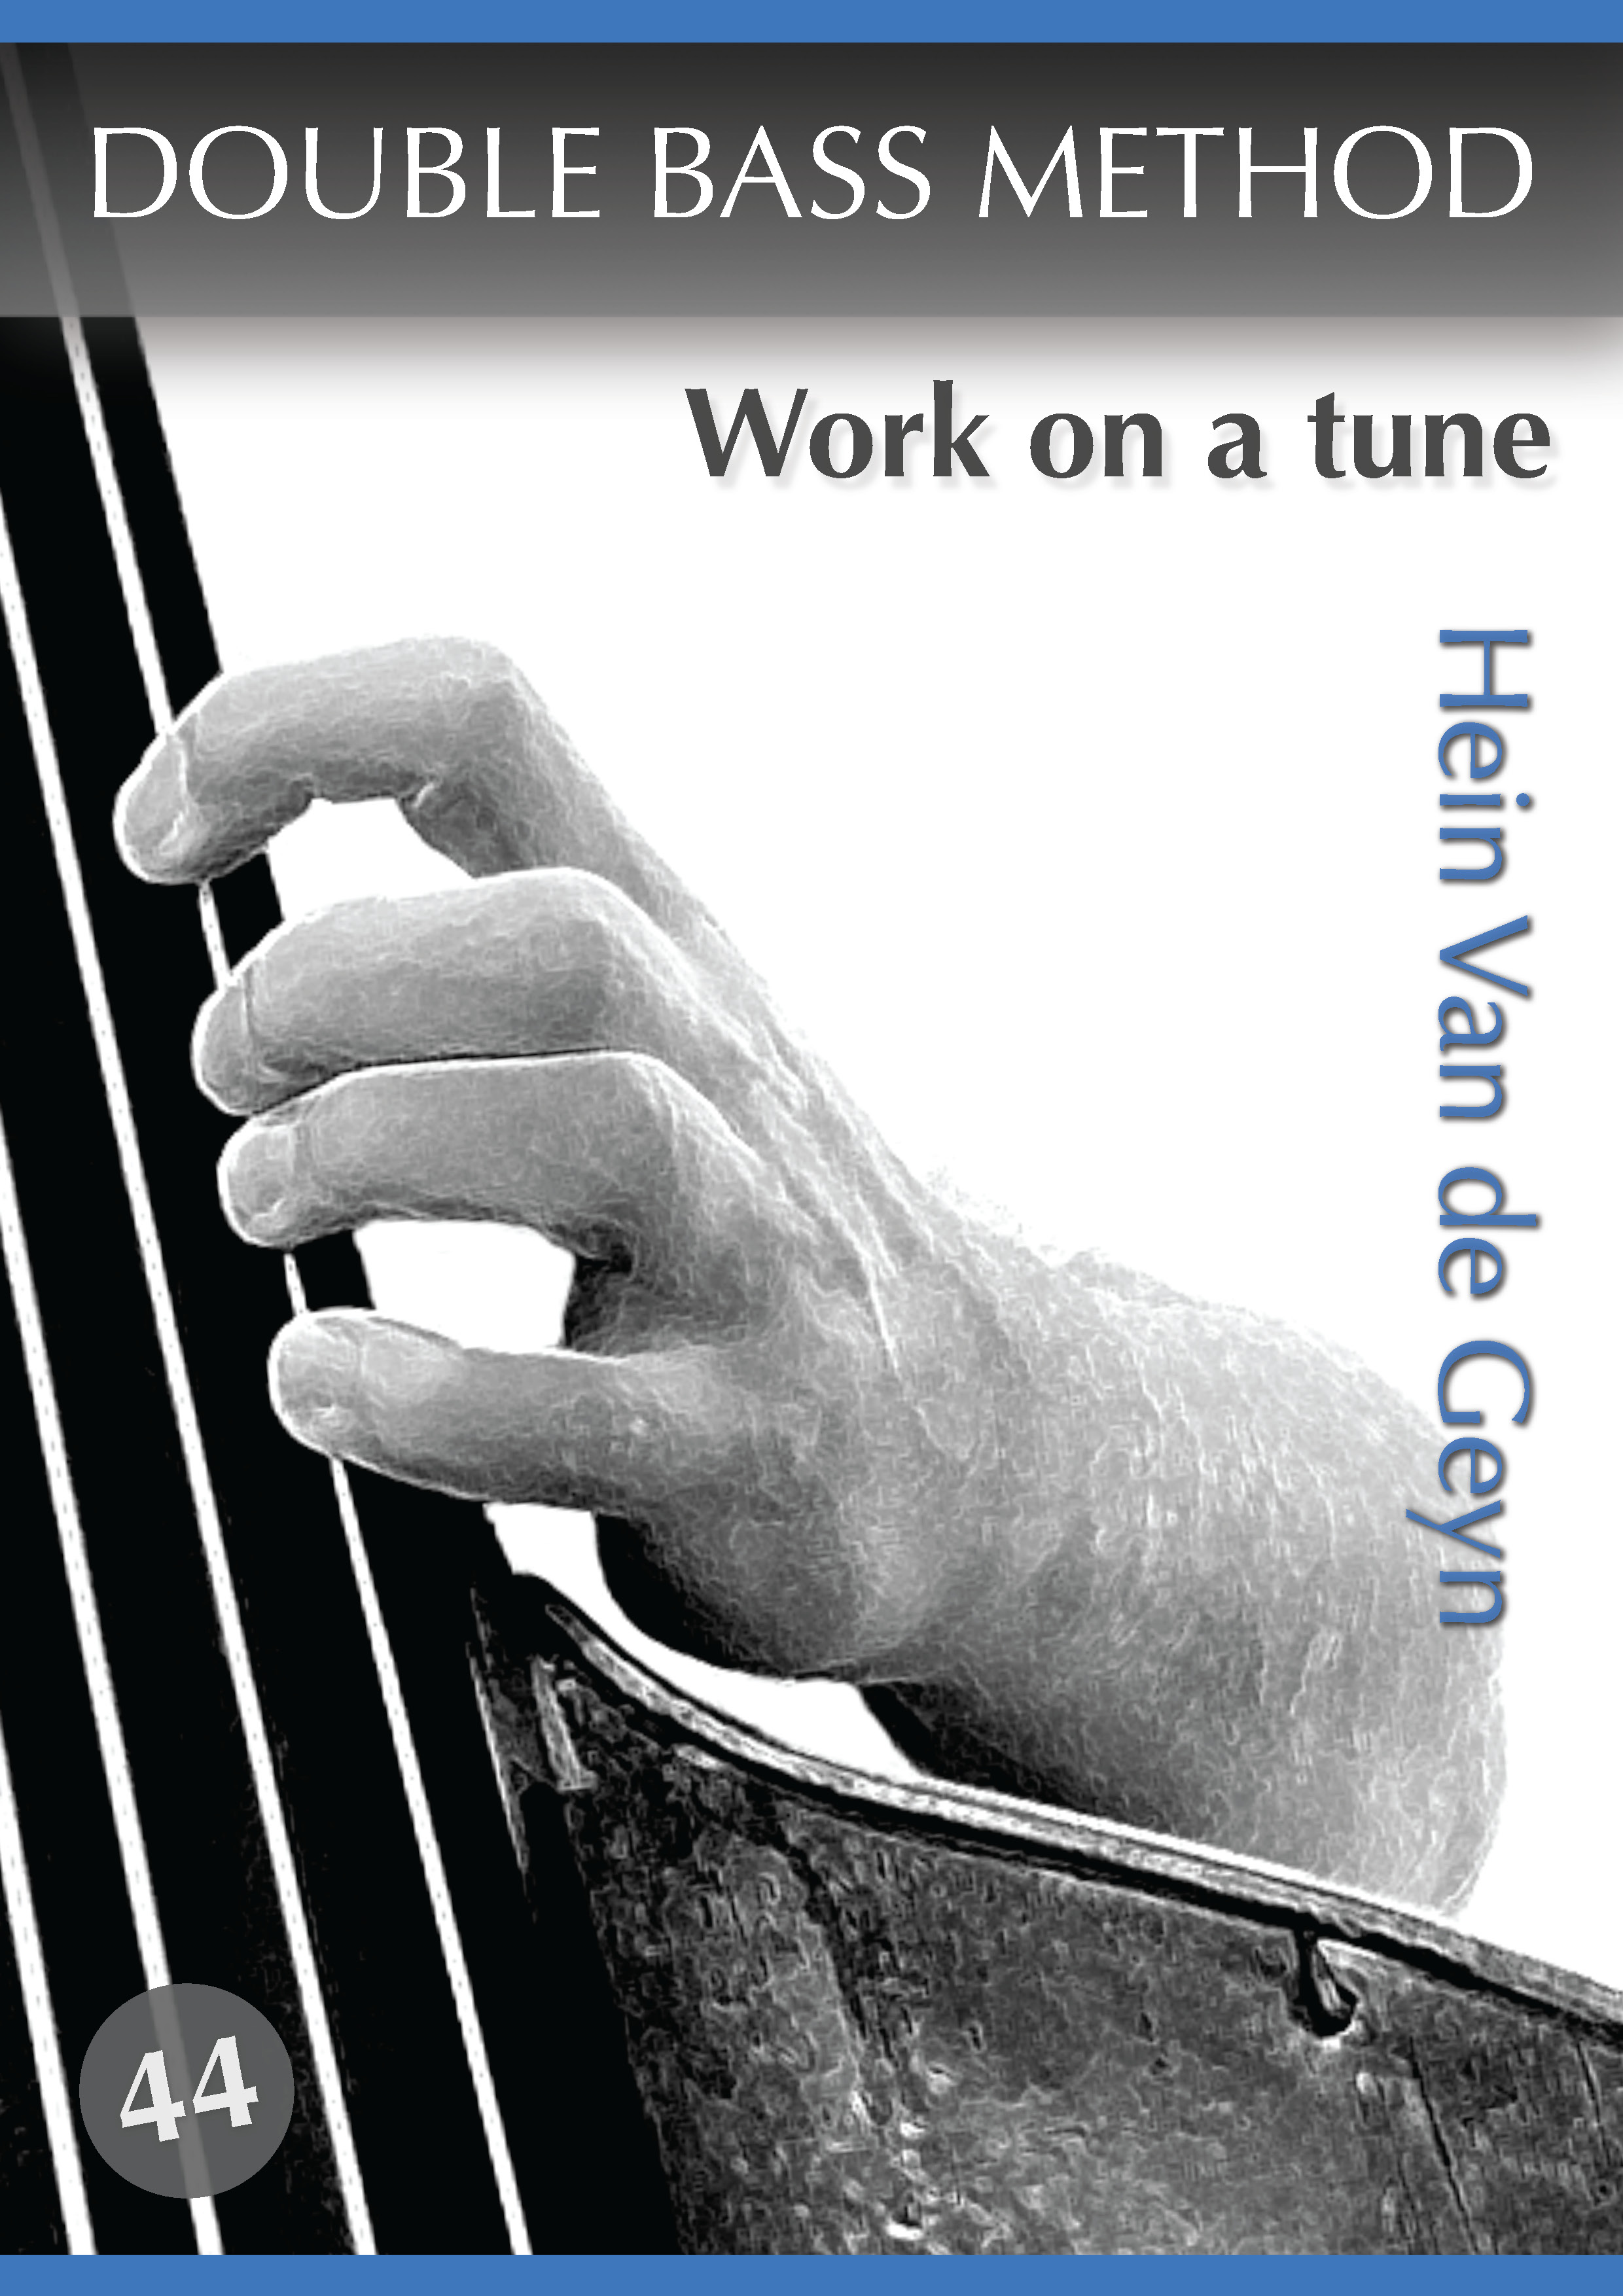 Work on a tune - Hein Van de Geyn - Double Bass Method